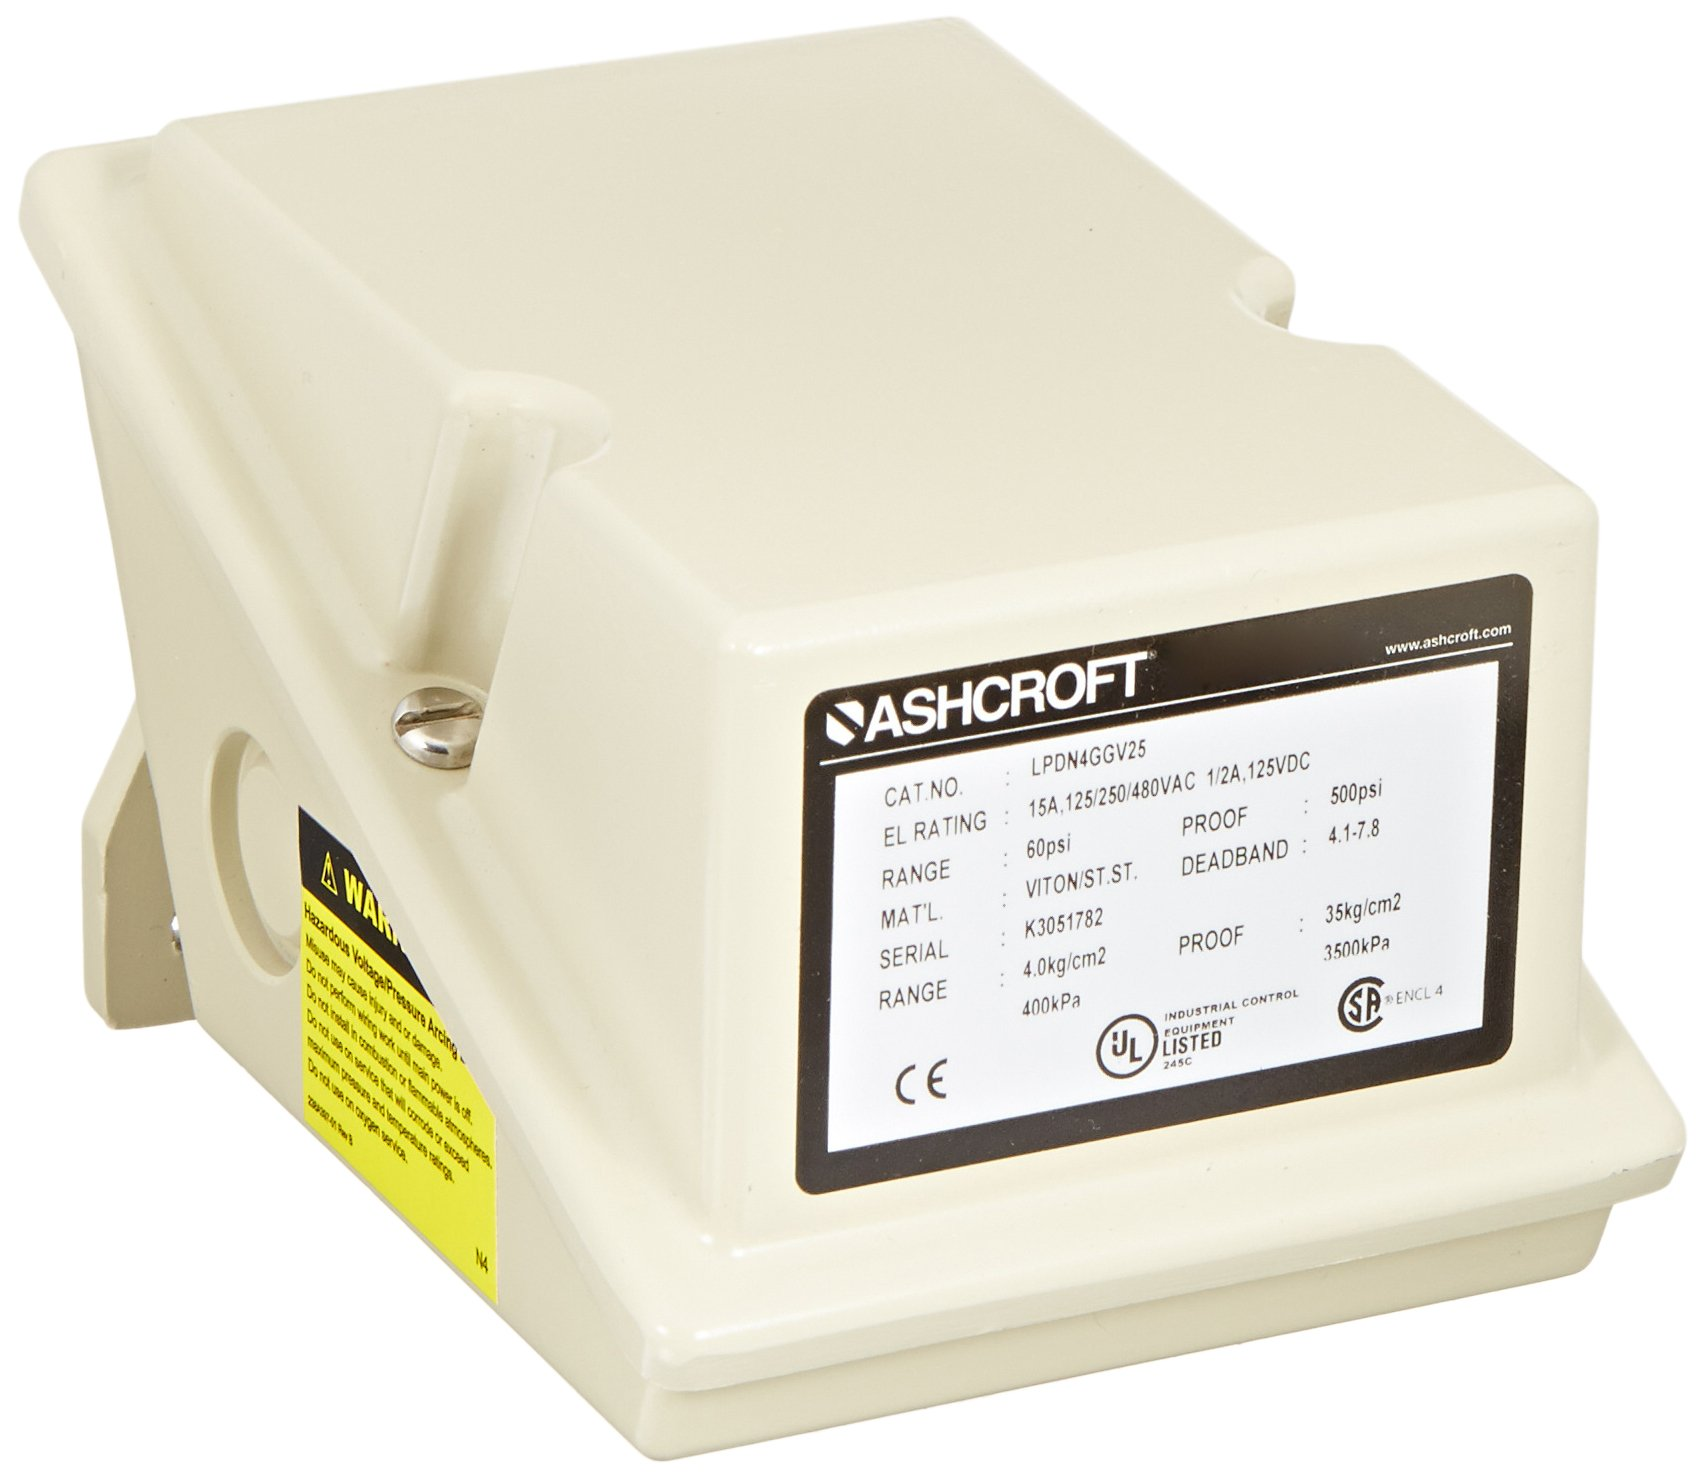 Ashcroft Series L Epoxy Coated Die Cast Aluminum Industrial Pressure Control Switch with SPDT Contact Form, Adjustable Deadband, 1/4'' NPT Female Connection, Viton Actuator Seal, 6/60 psi Range